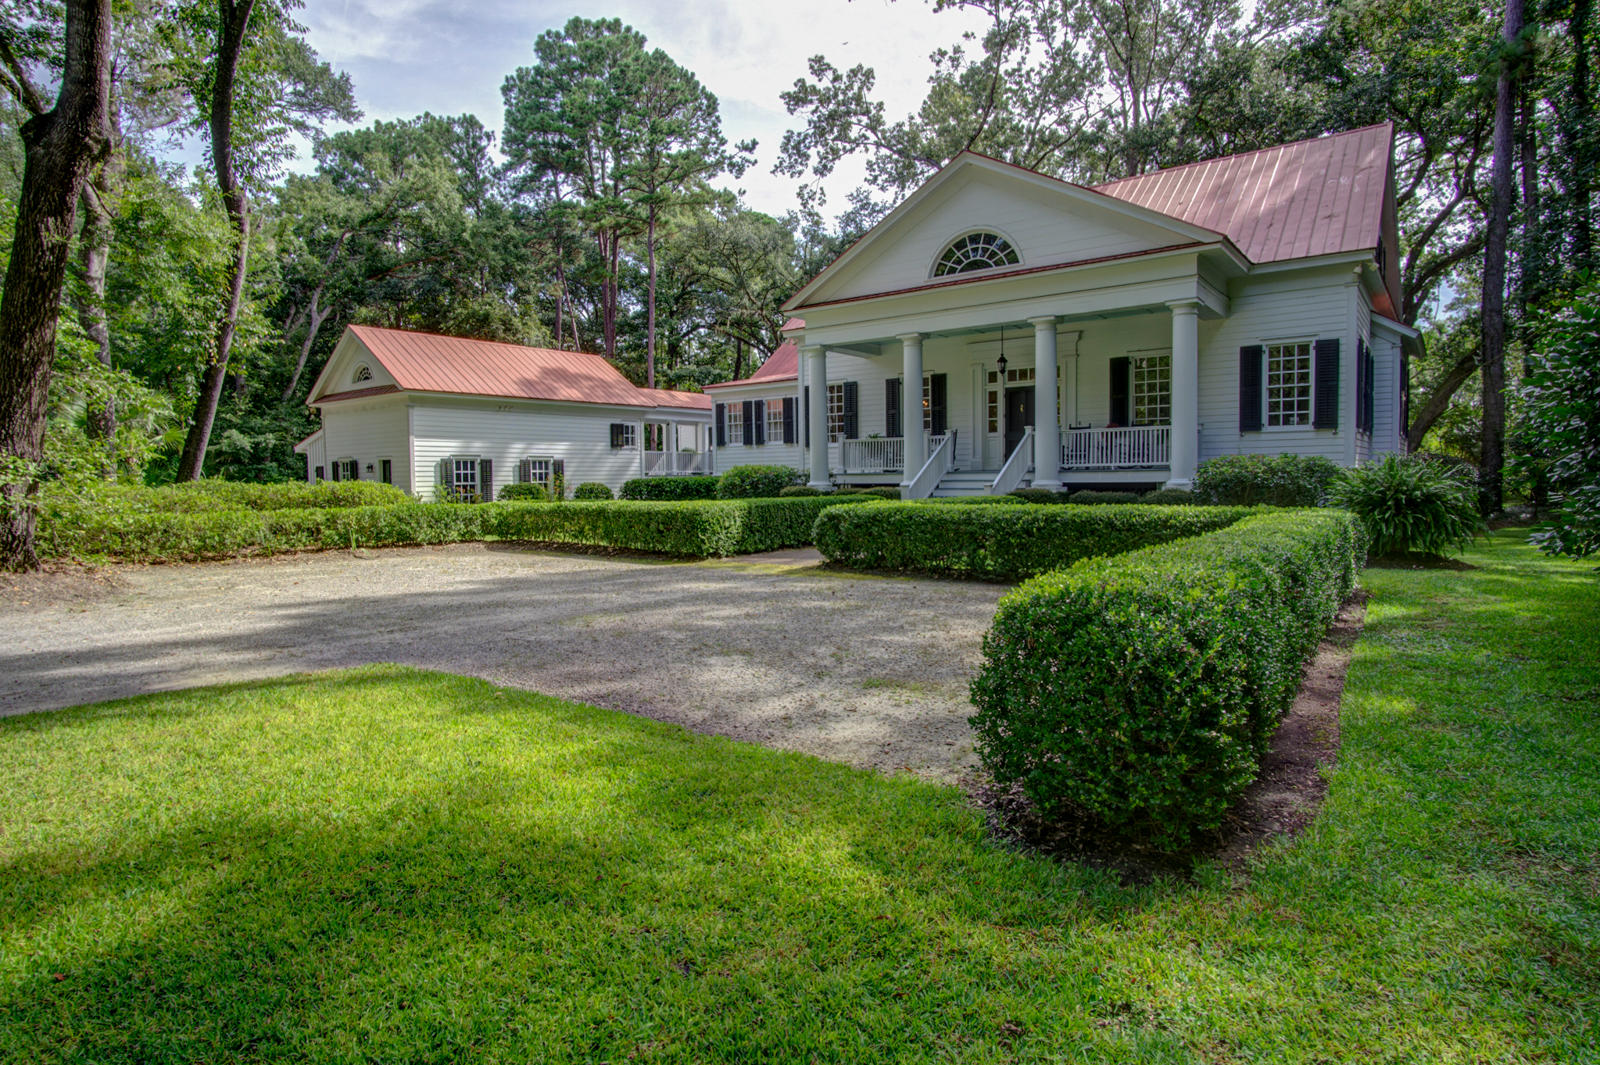 Bull Point Plantation Homes For Sale - 123 Bull Point, Seabrook, SC - 49